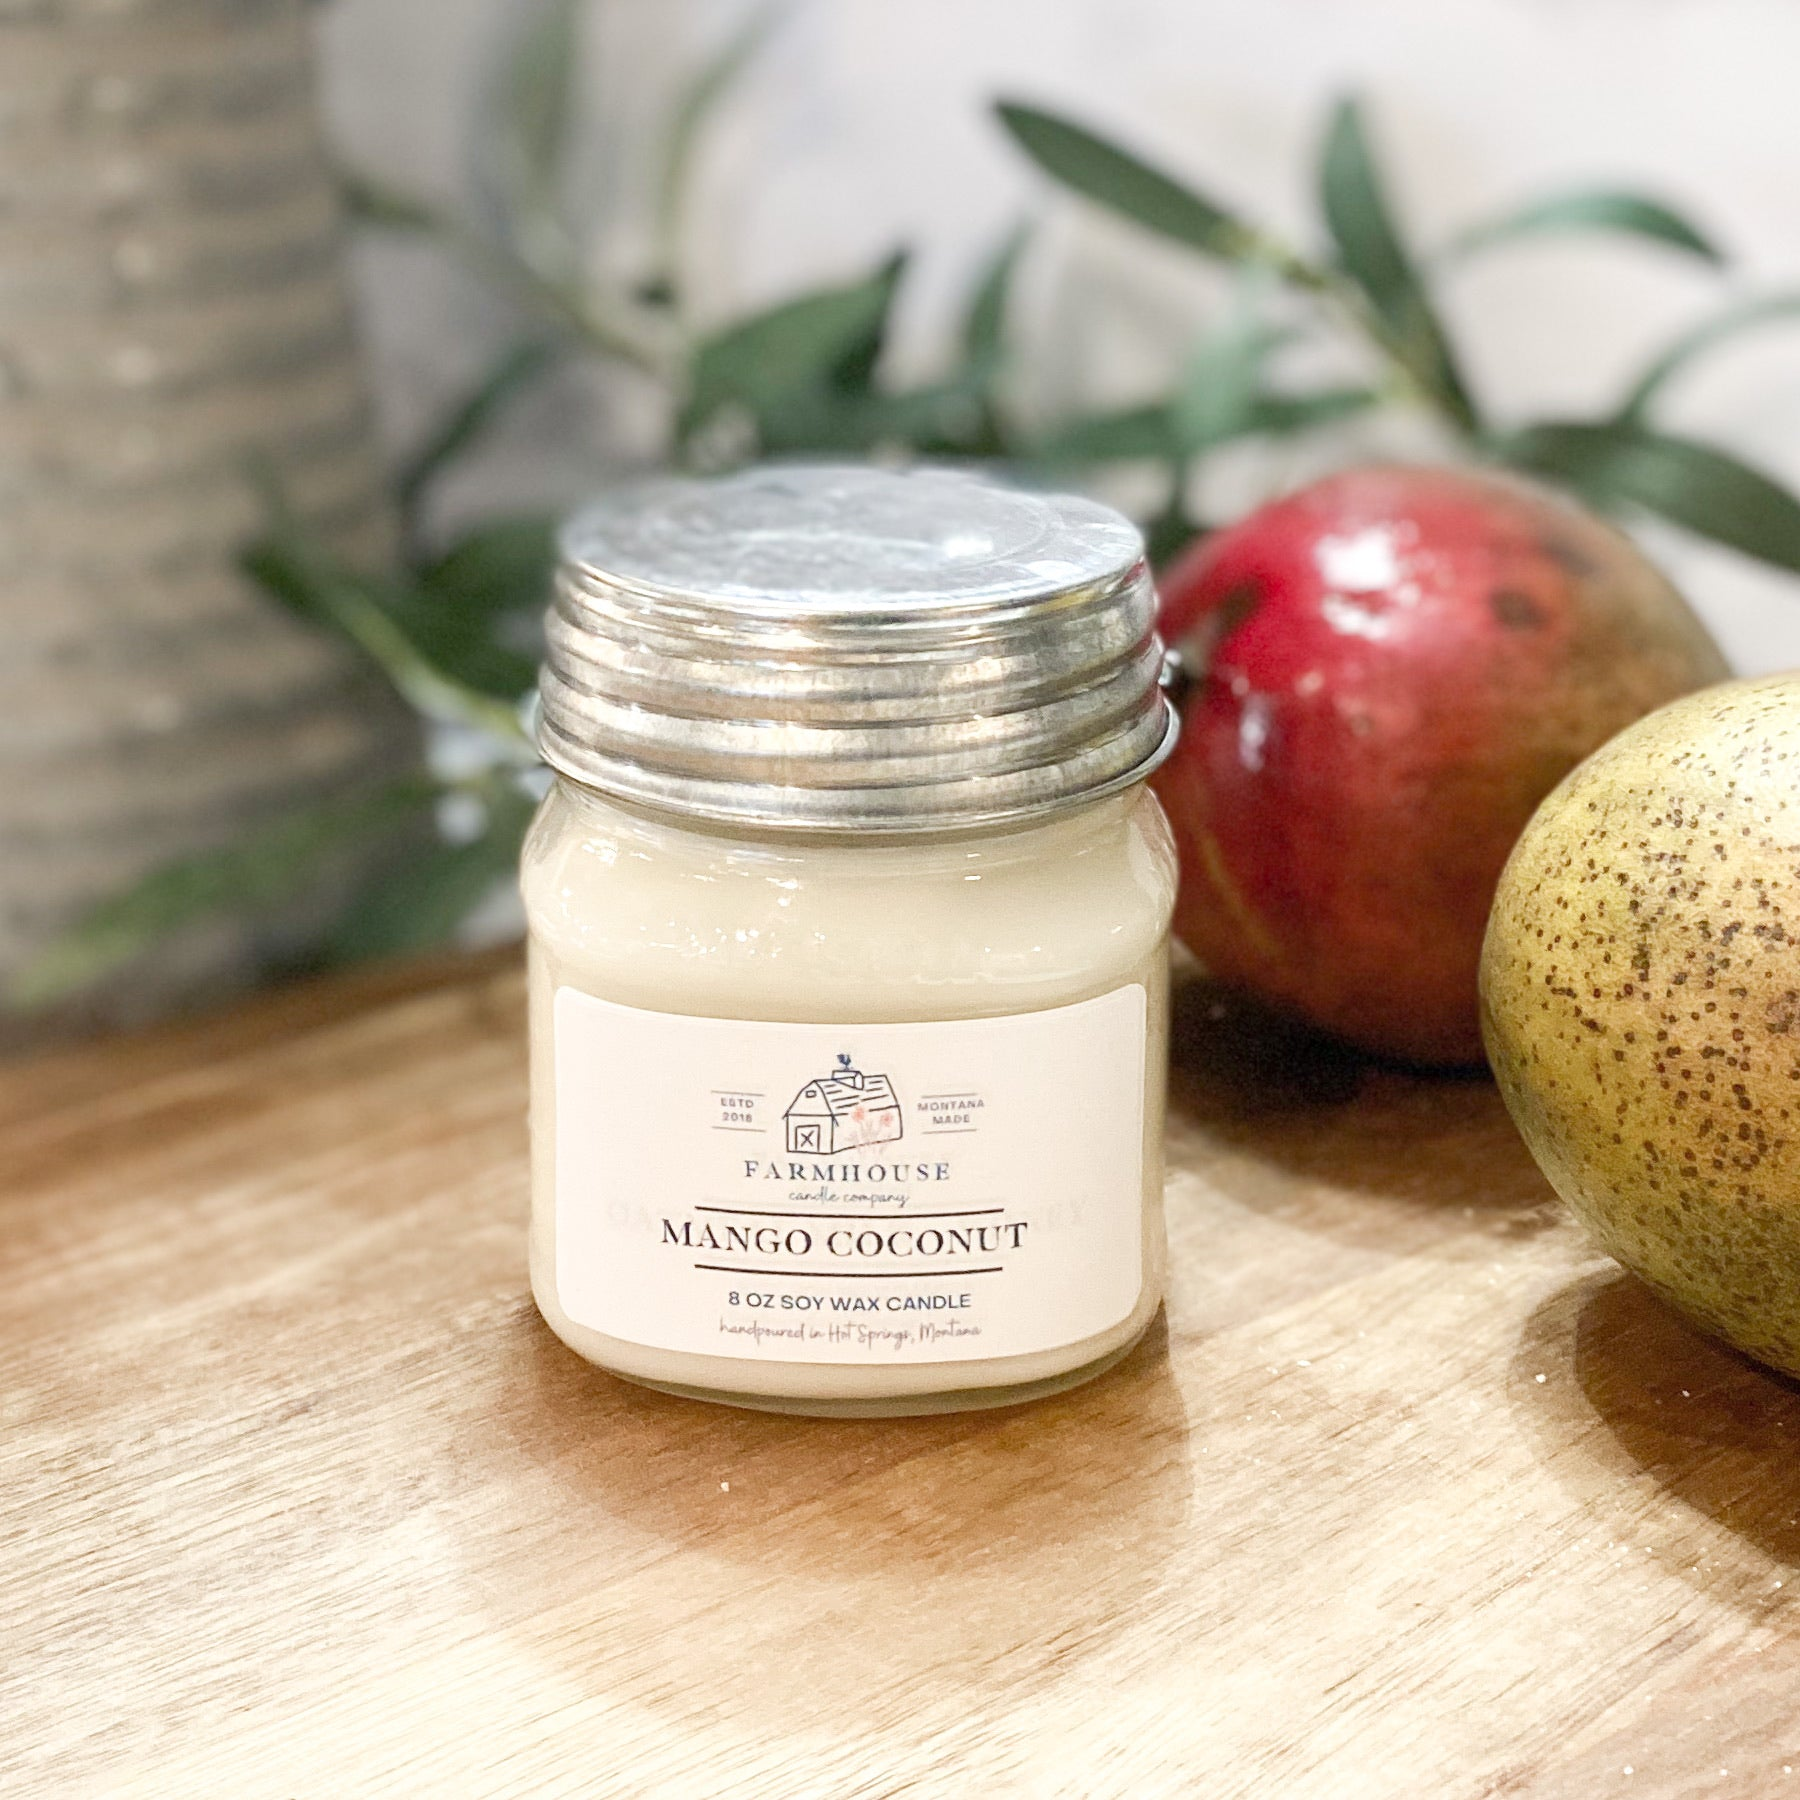 Mango Coconut 8 oz Mason Jar candle